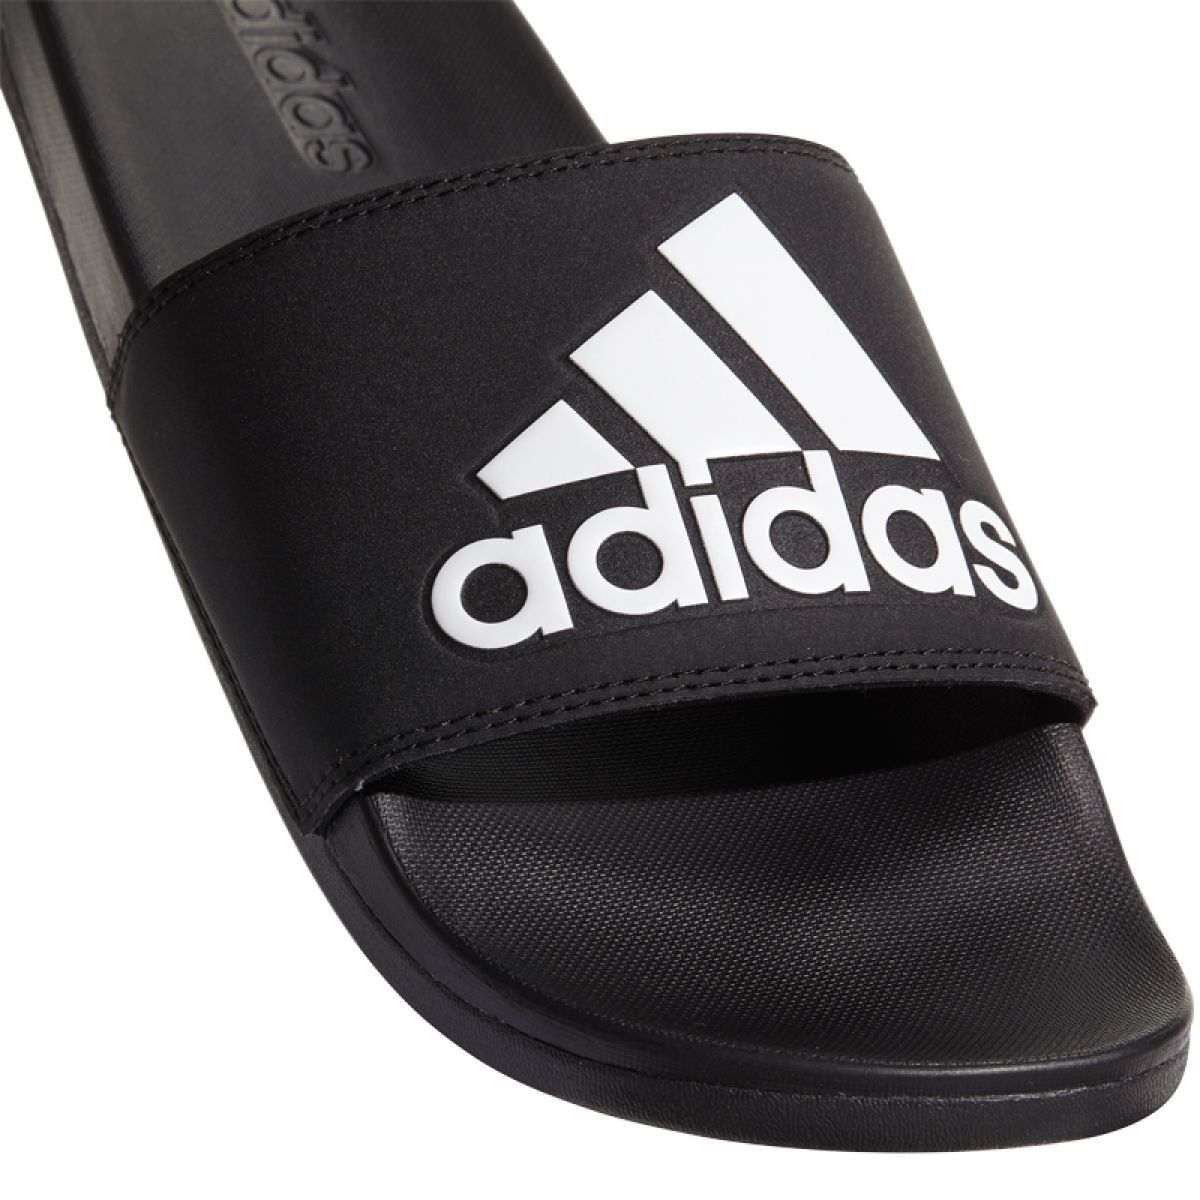 adidas slippers for sale